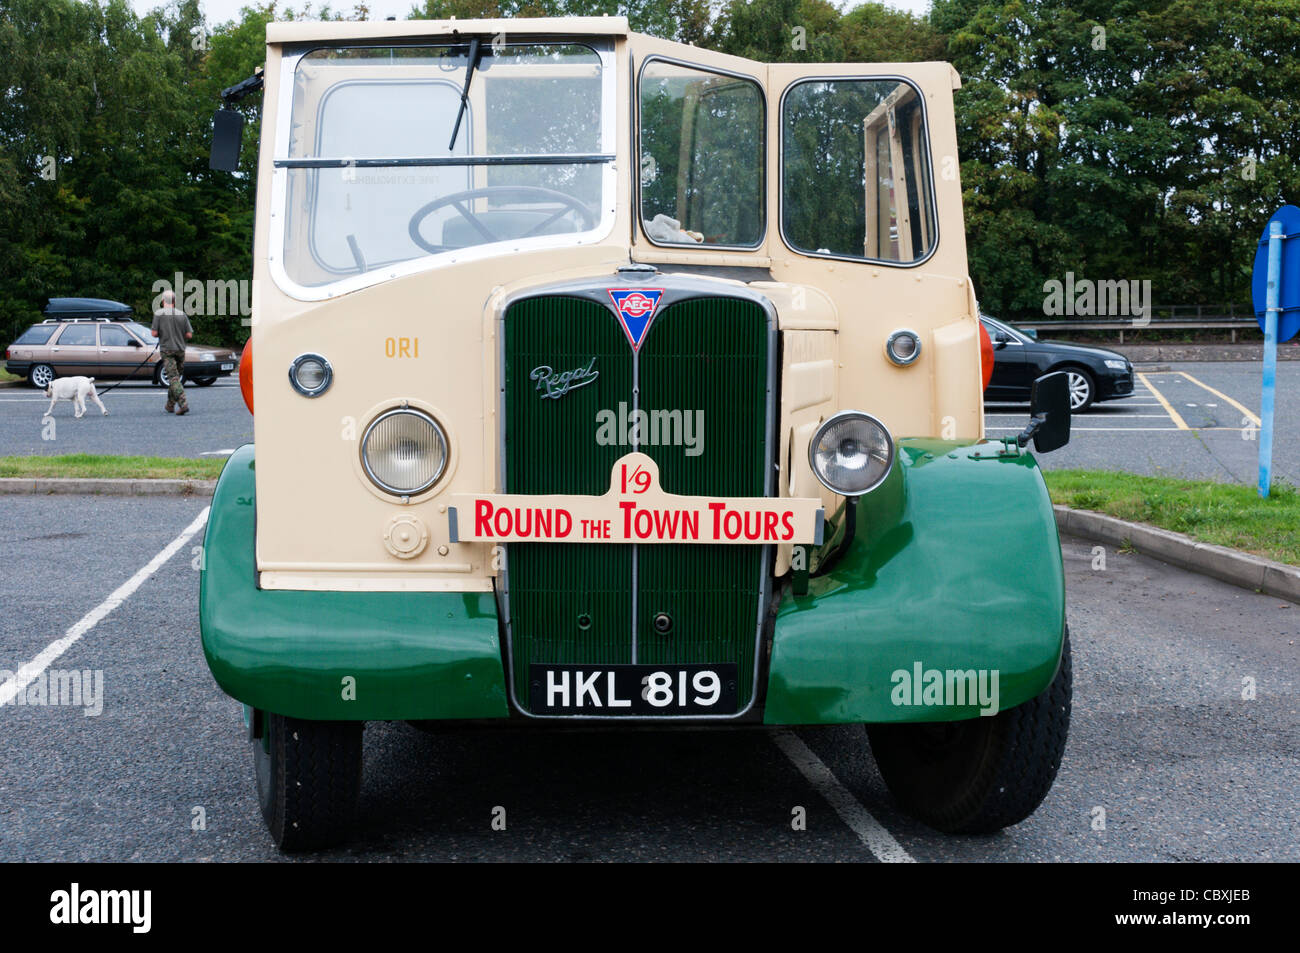 Sign for Round The Town Tours on the front of an old bus. - Stock Image